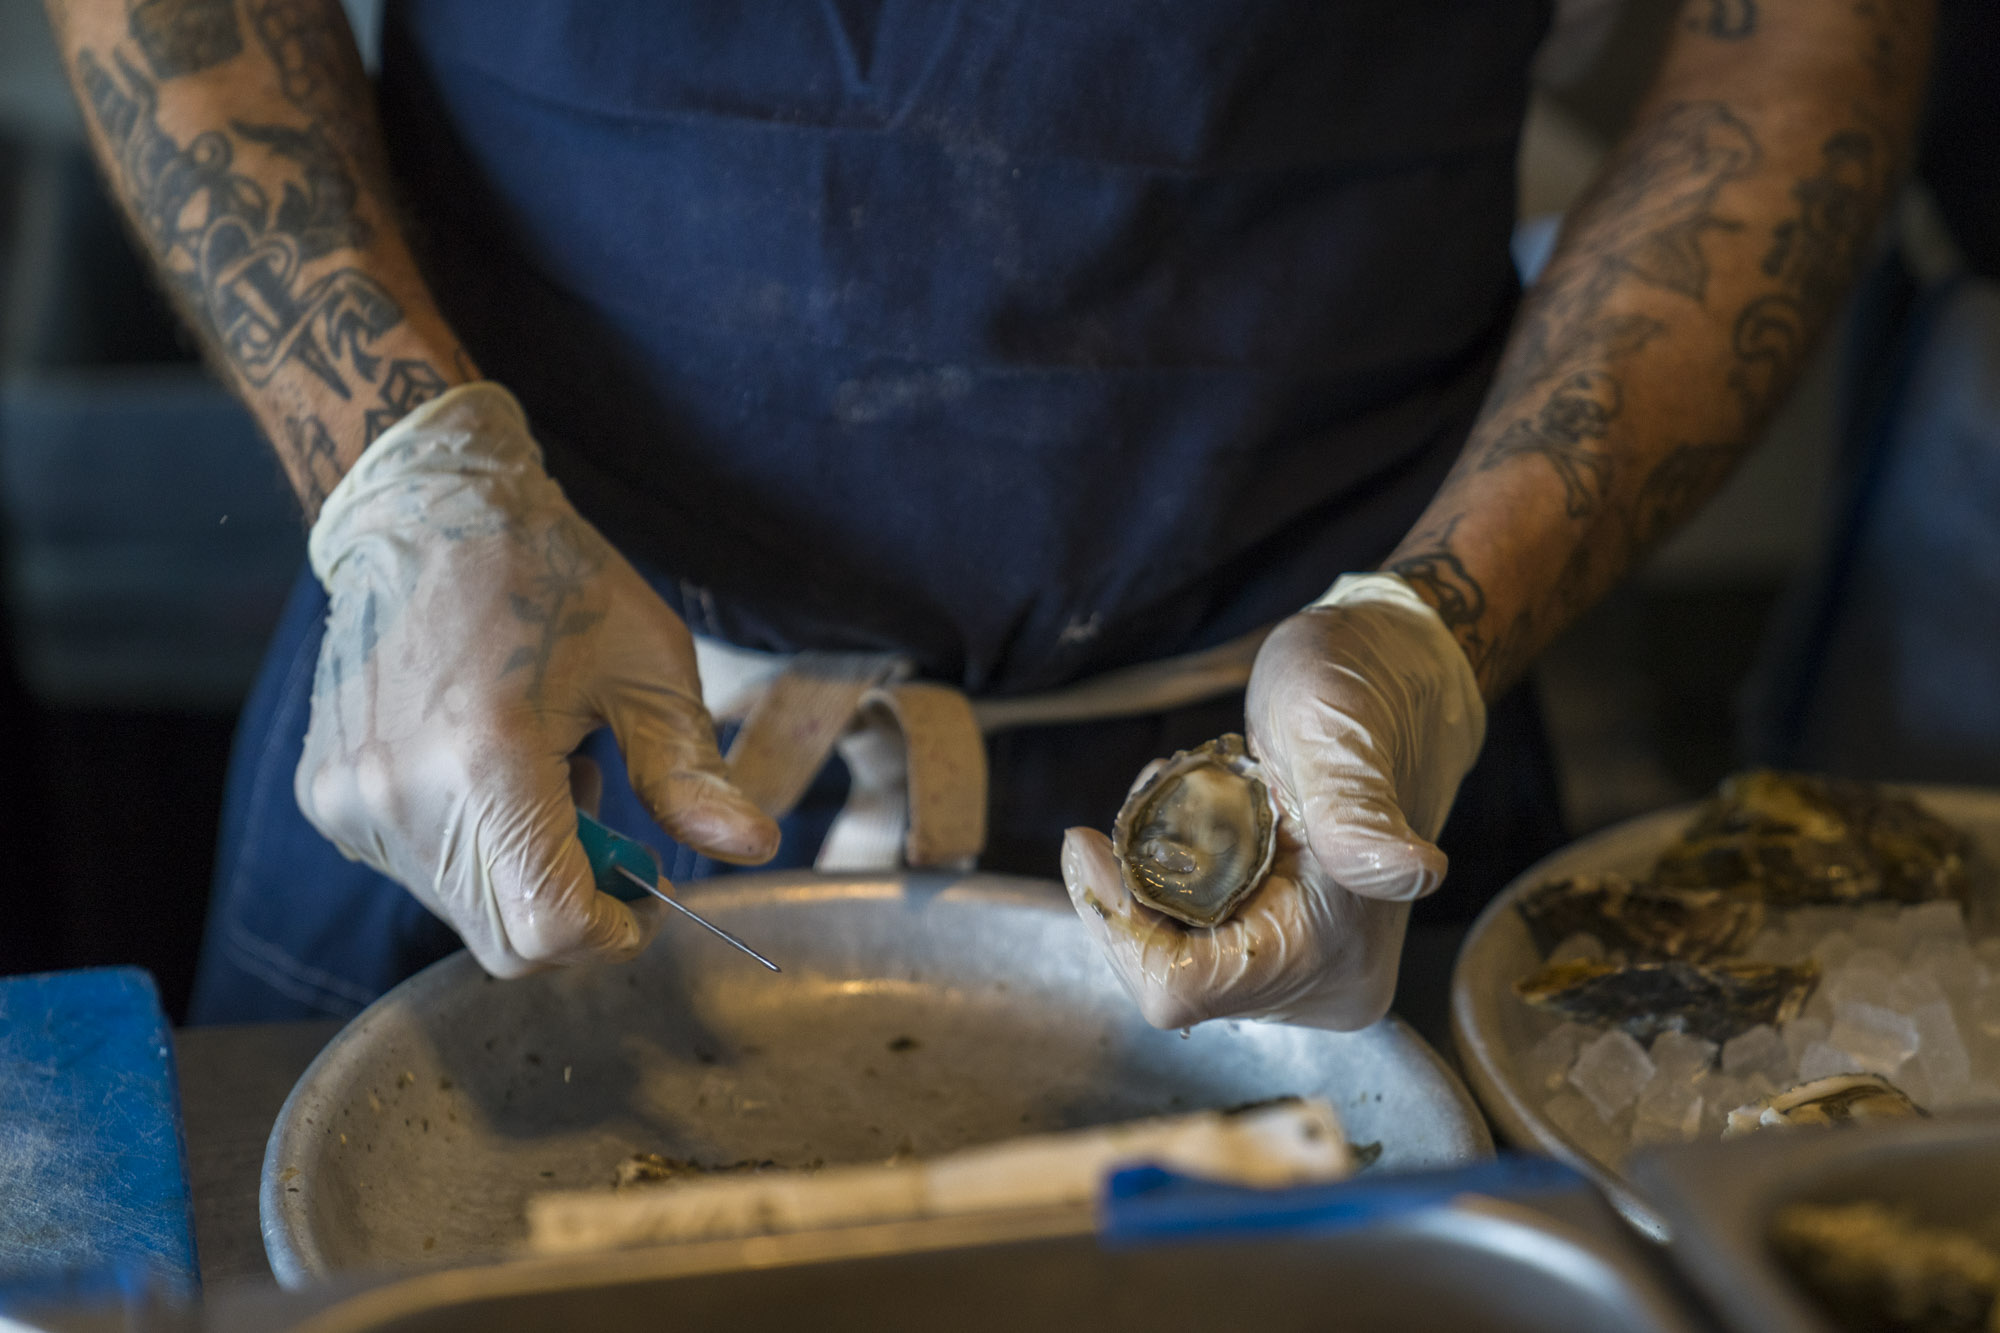 A close-up of a guy with tattoos shucking oysters in Seattle.